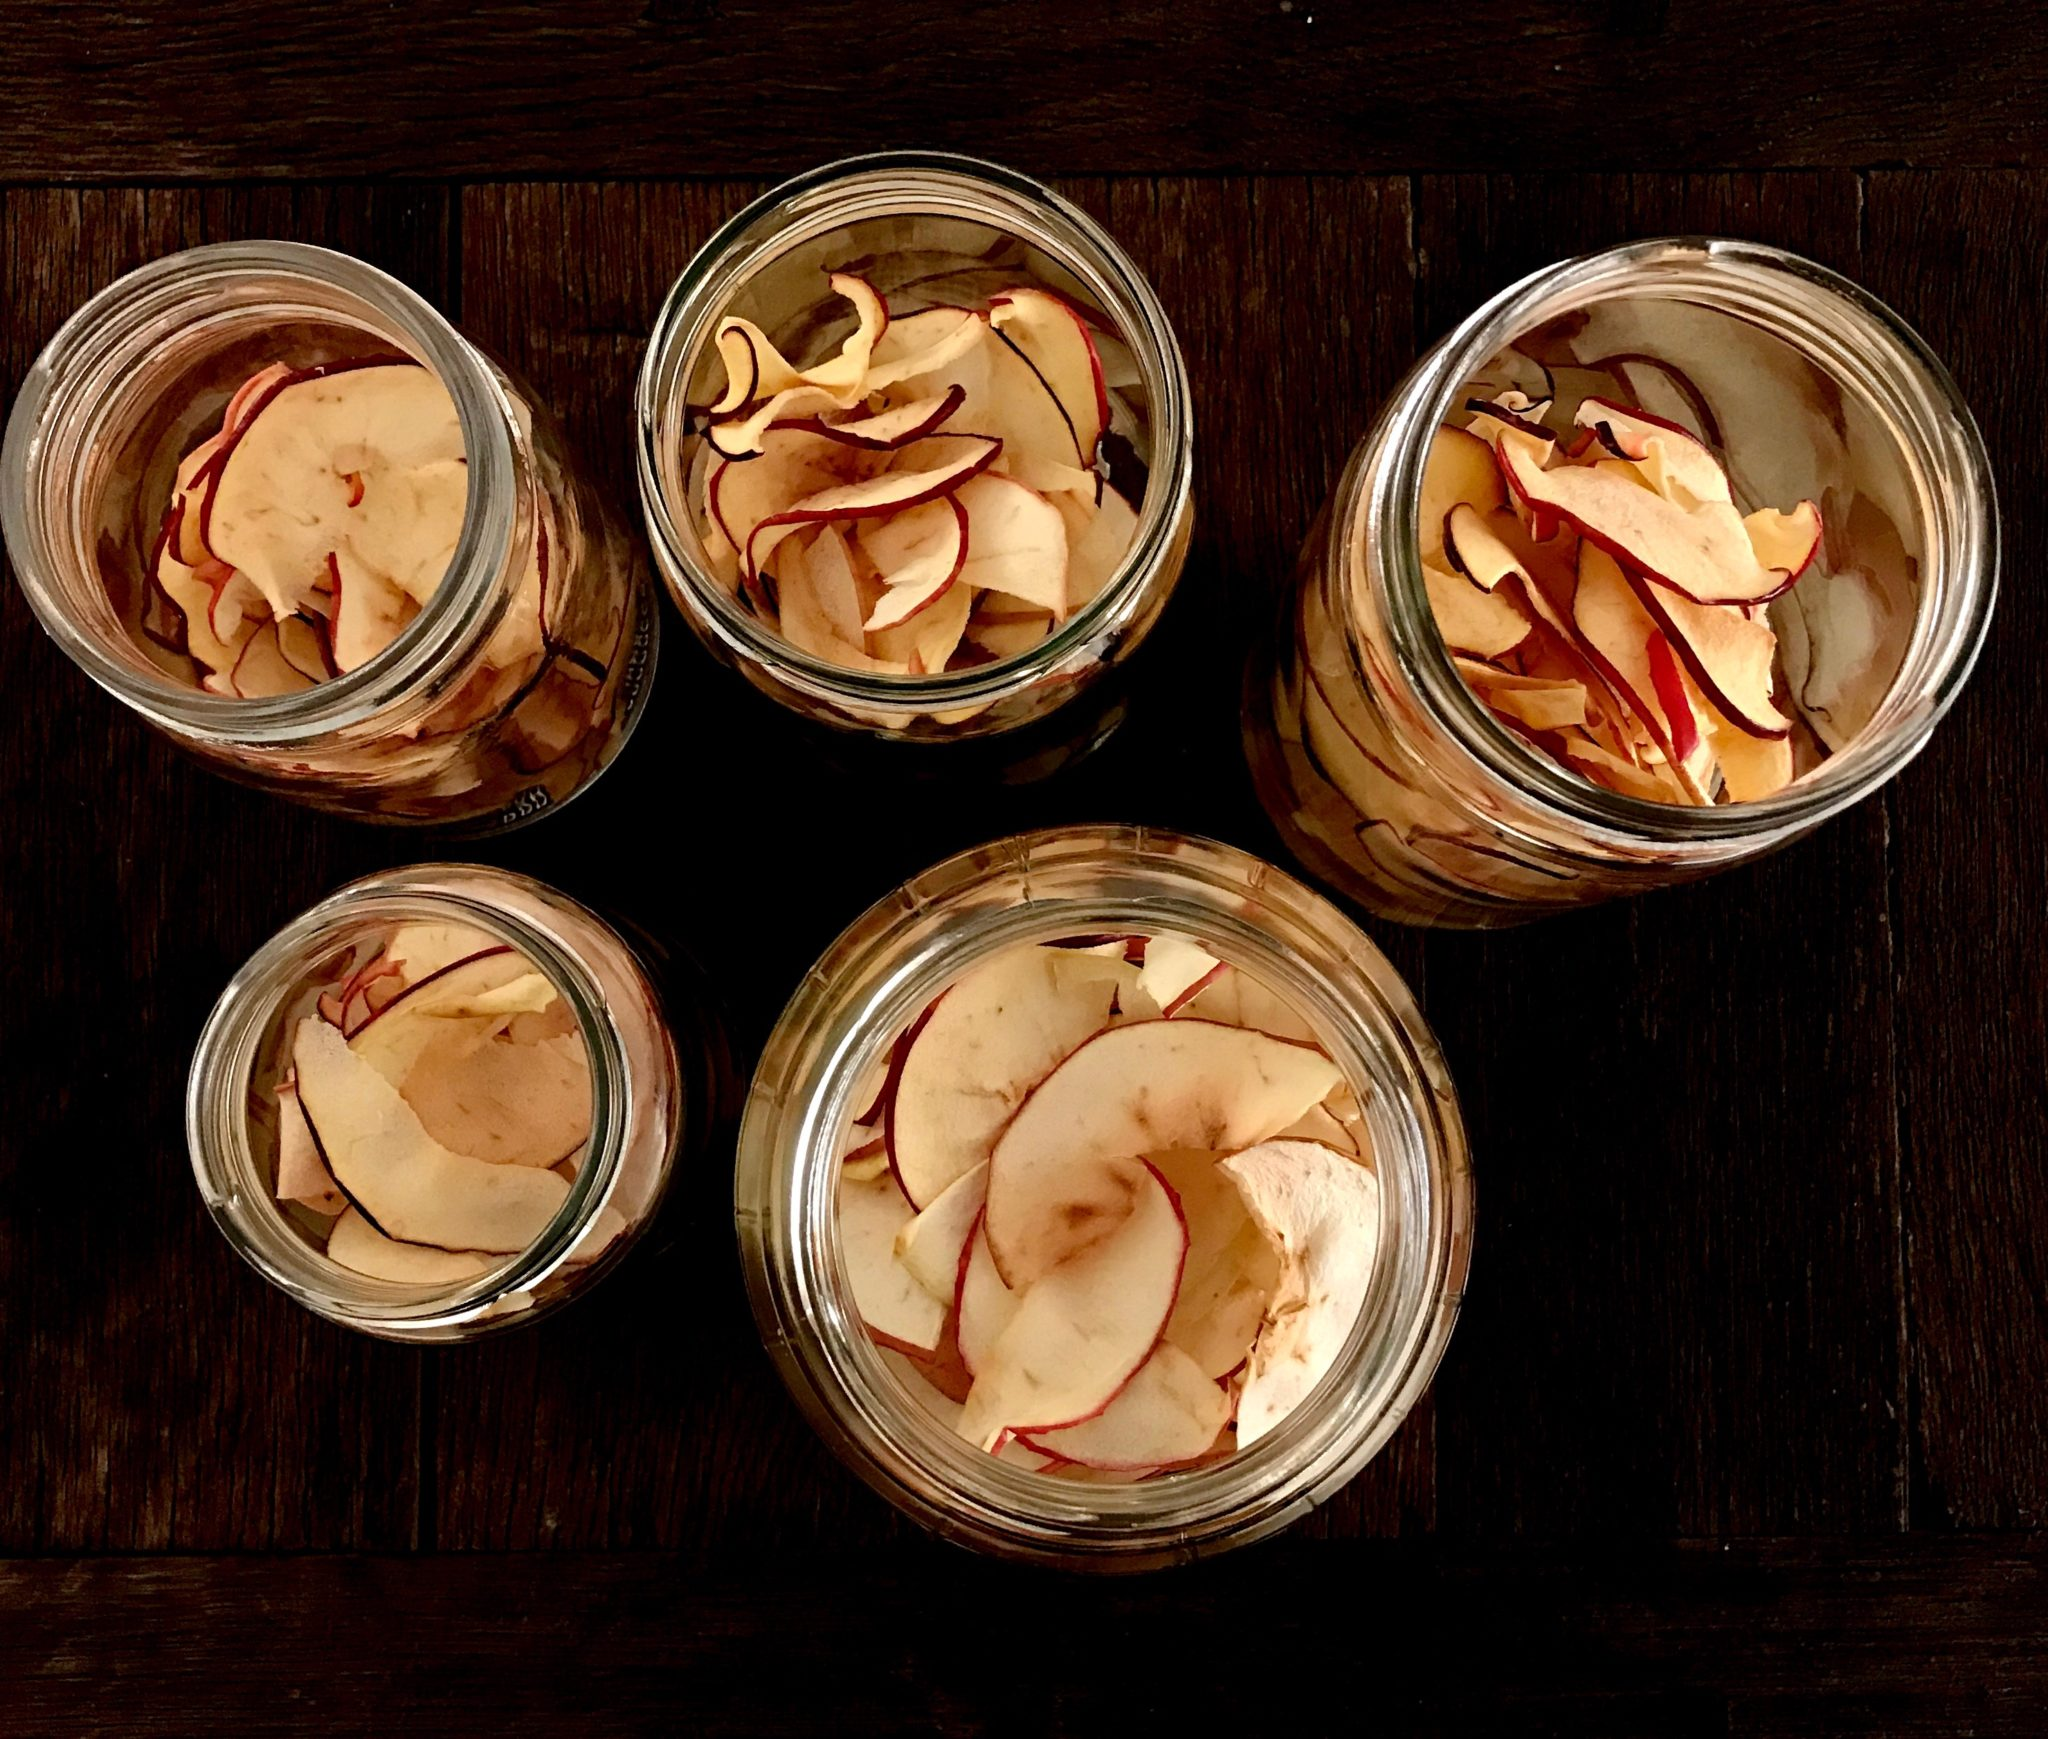 store them in glass jars